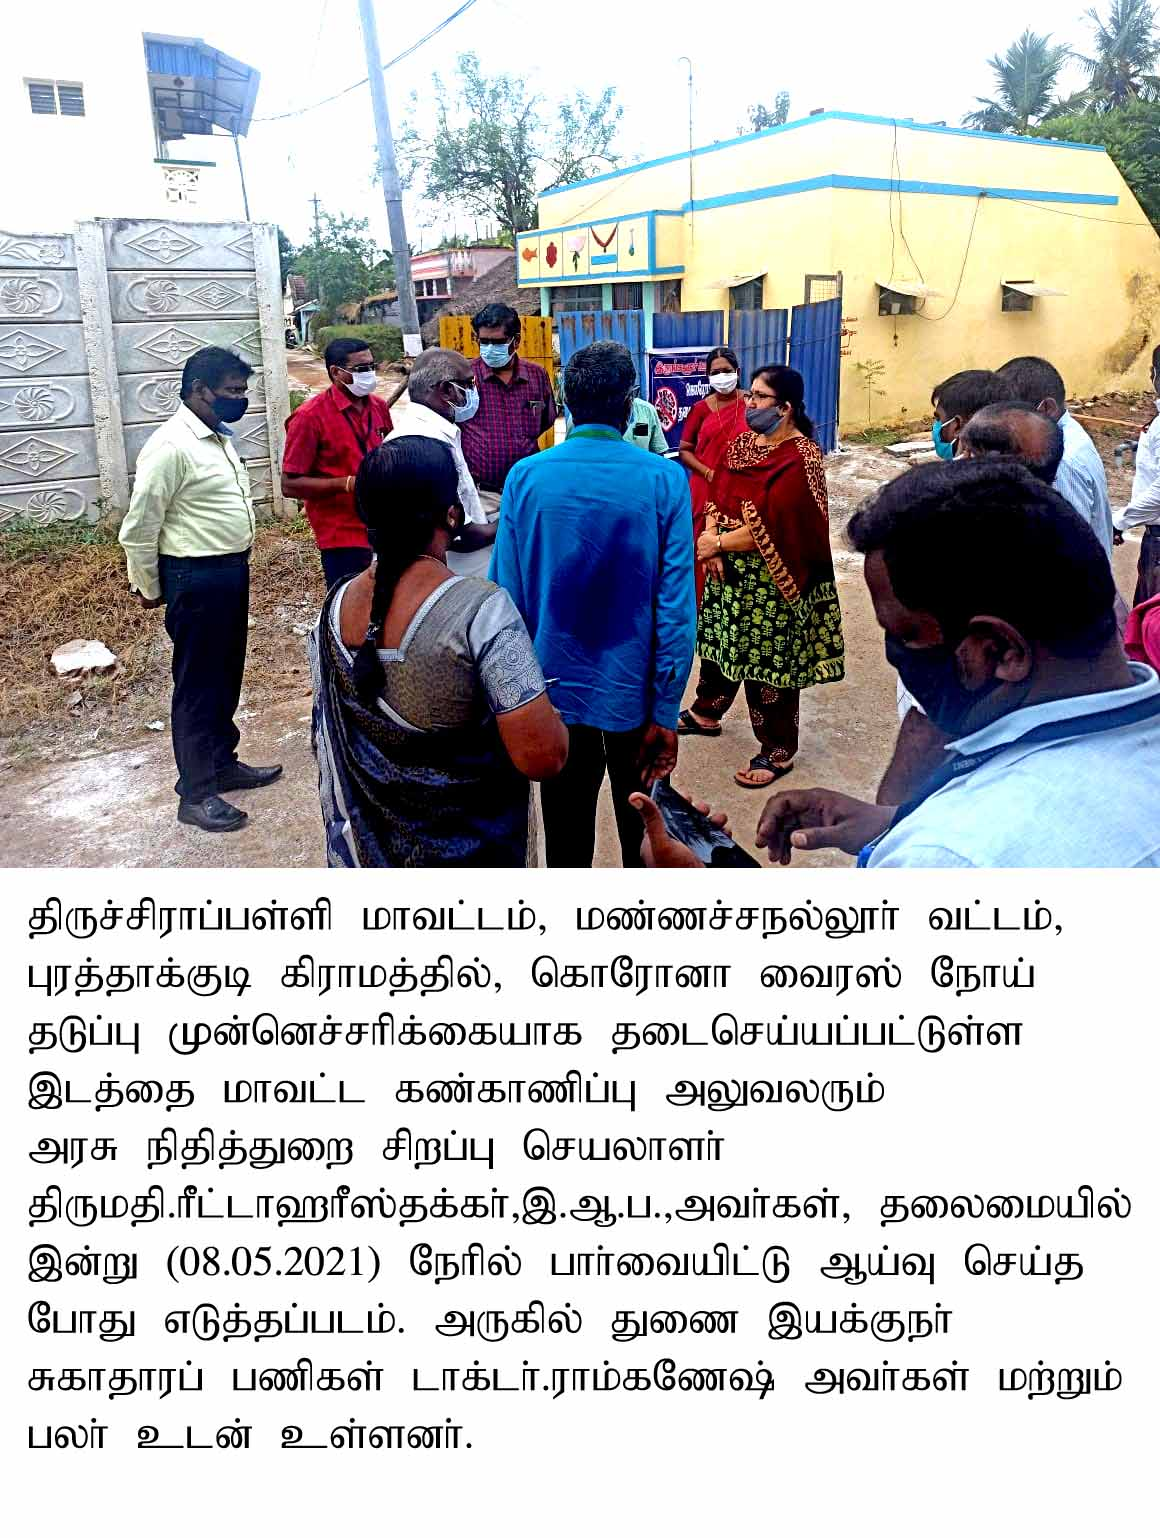 District Monitoring Officer Inspected the containment area at Mannachanallur Tlk, Purathakudi village on 08.05.2021